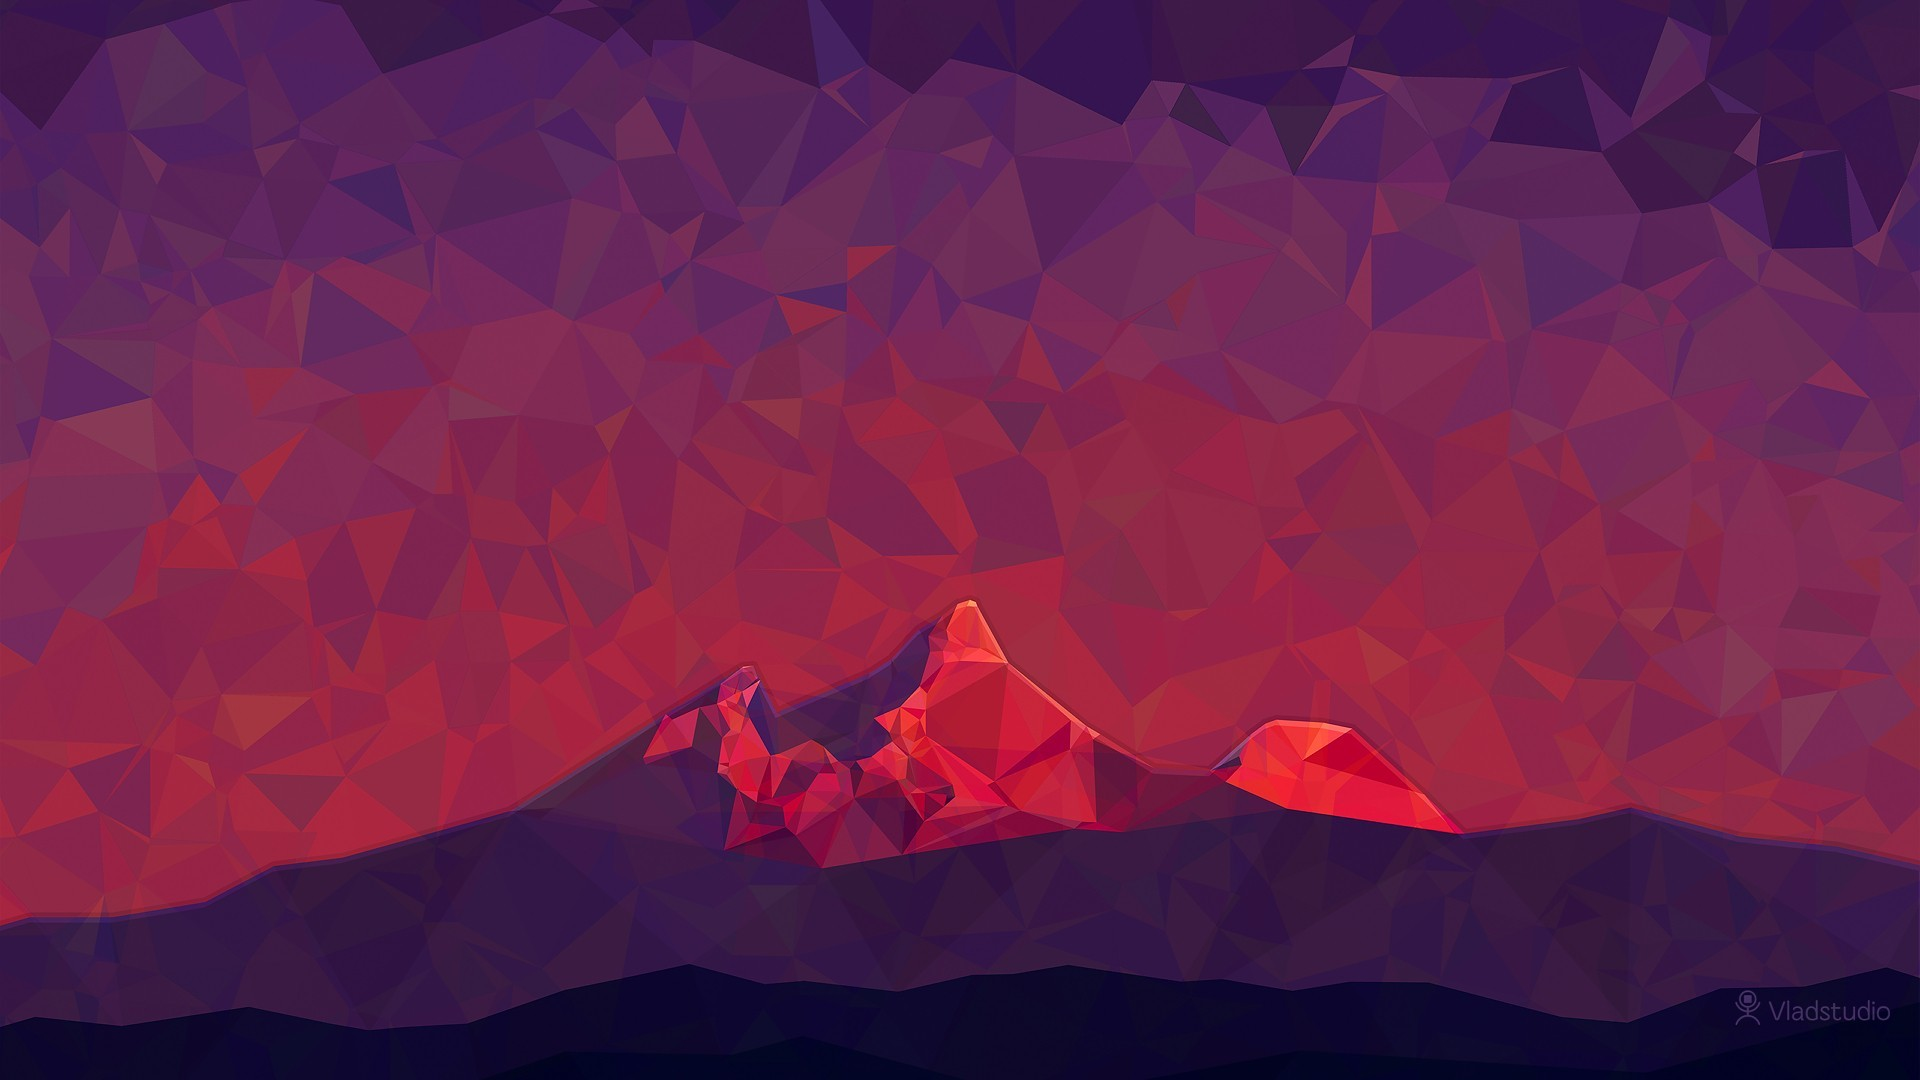 1920x1080 General  digital art low poly minimalism 2D triangle simple nature  mountains Vladstudio hills